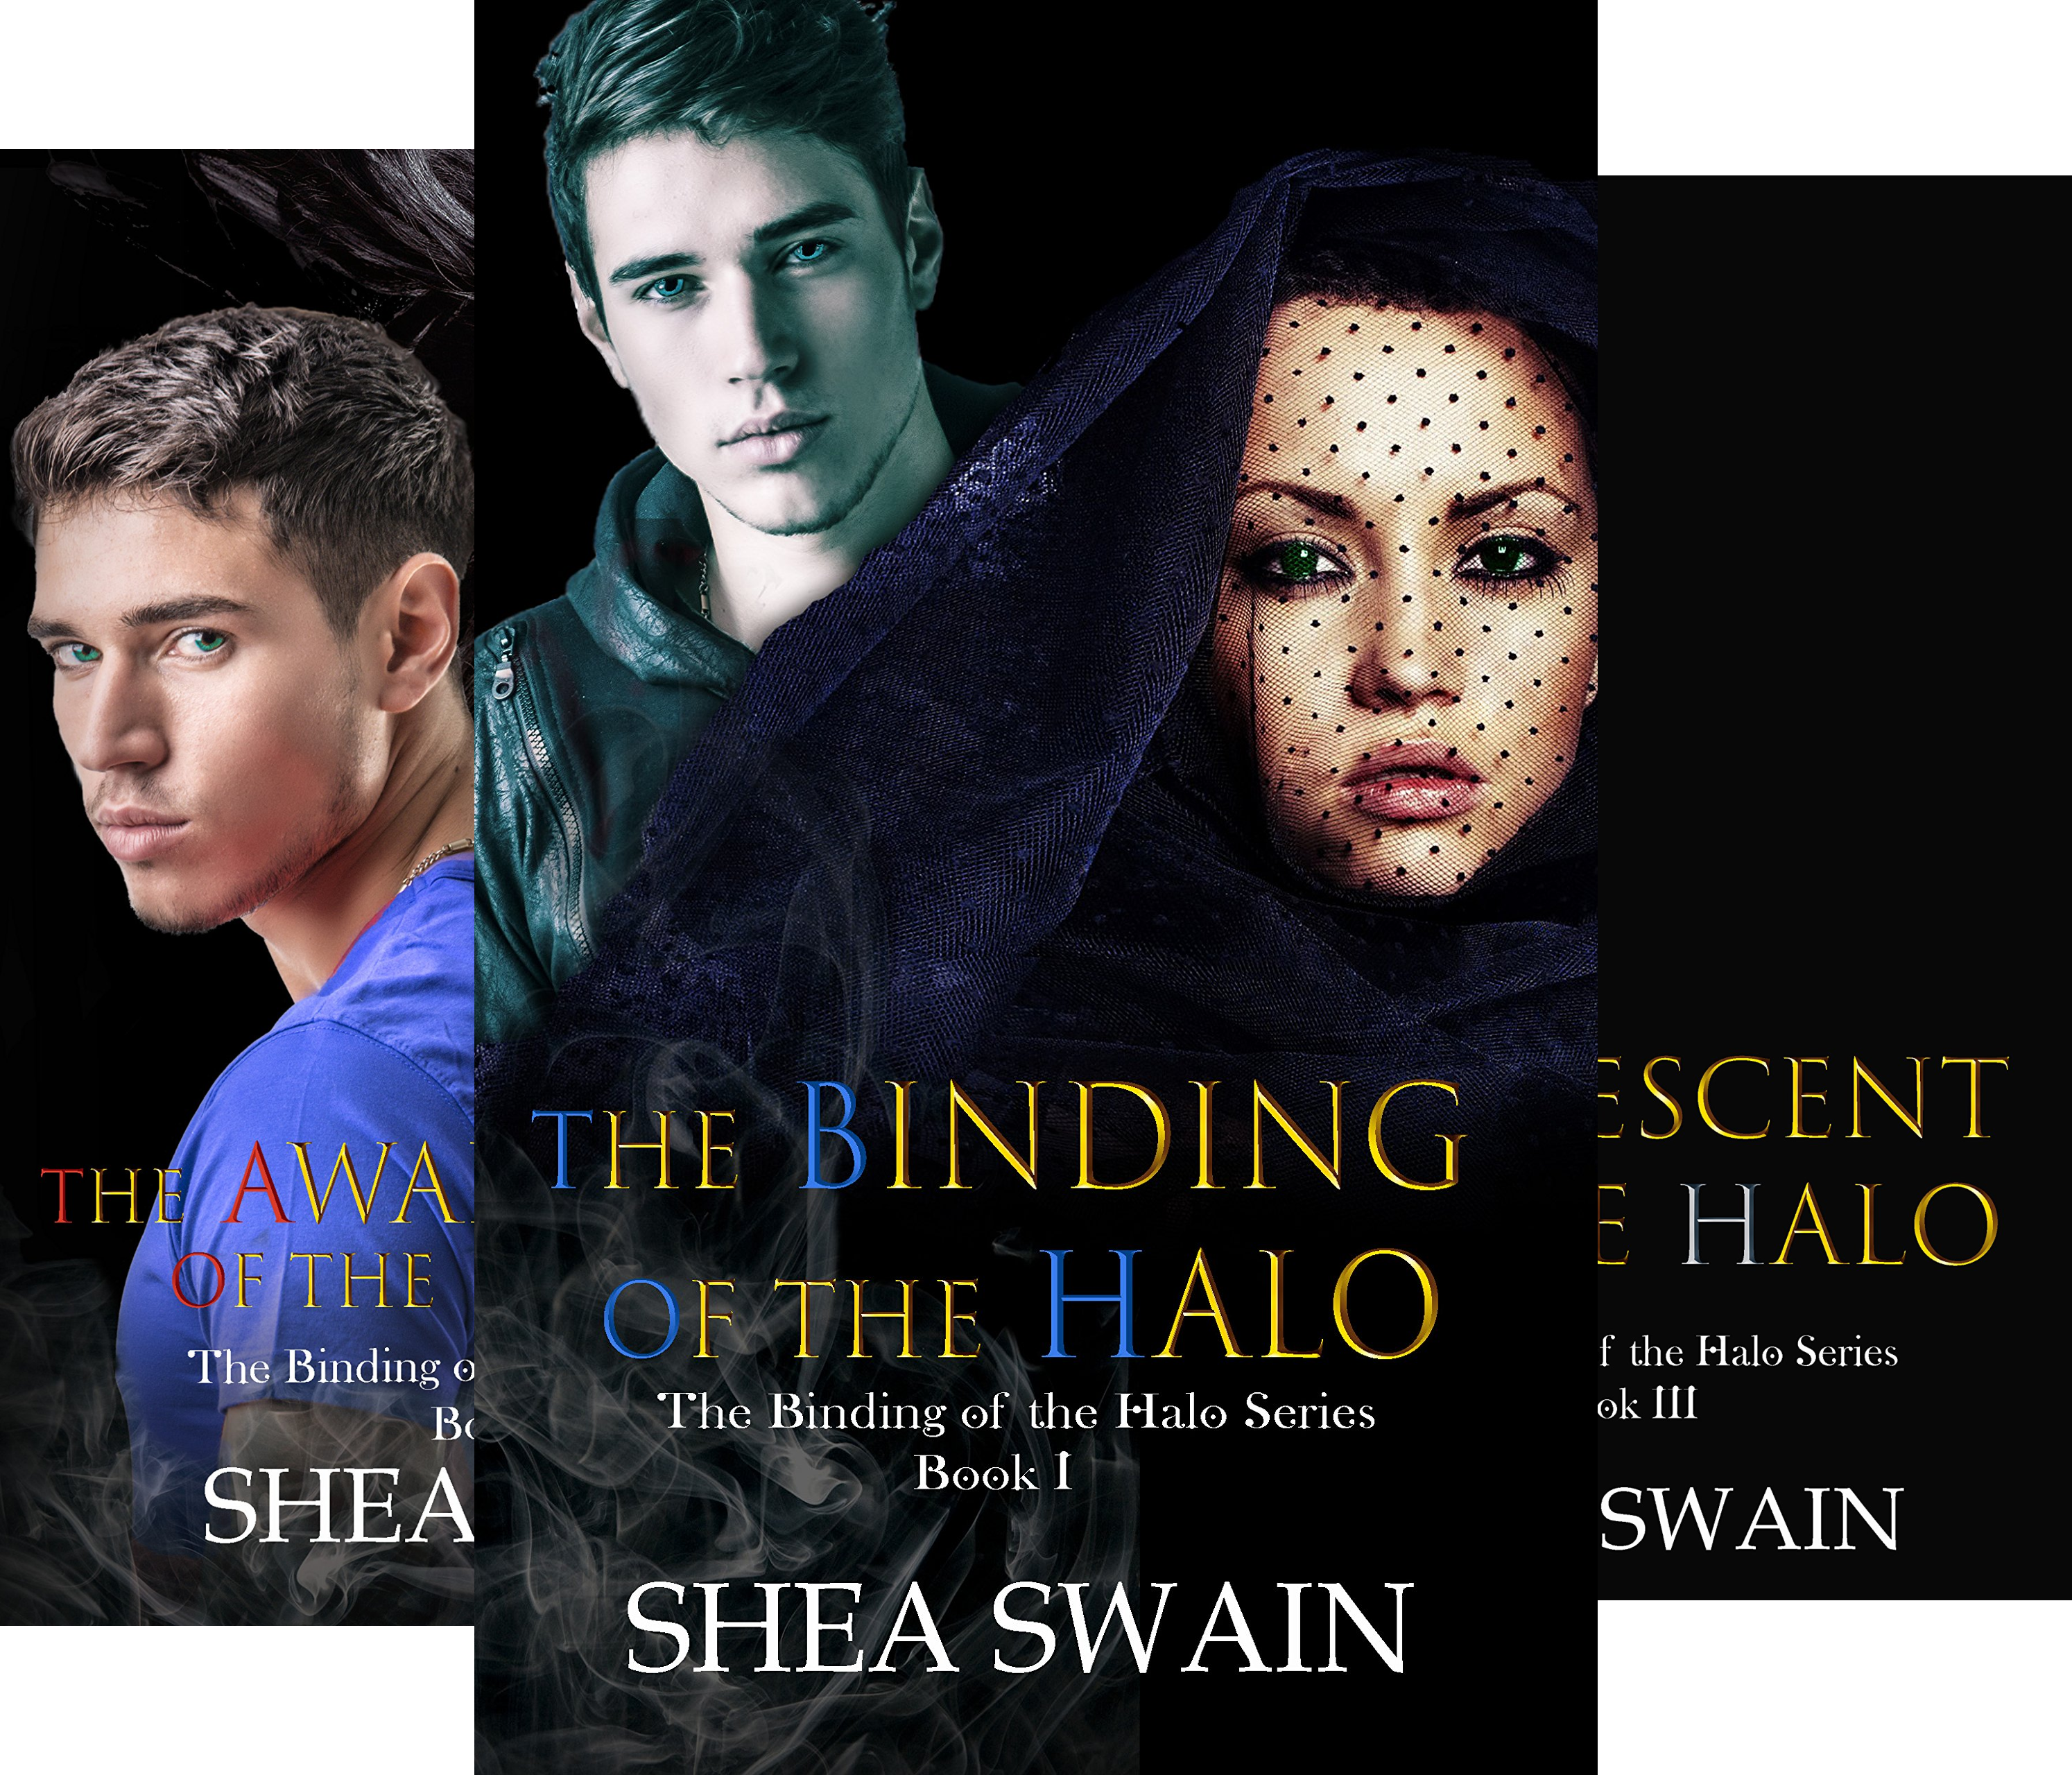 The Binding of the Halo Series (3 Book Series)